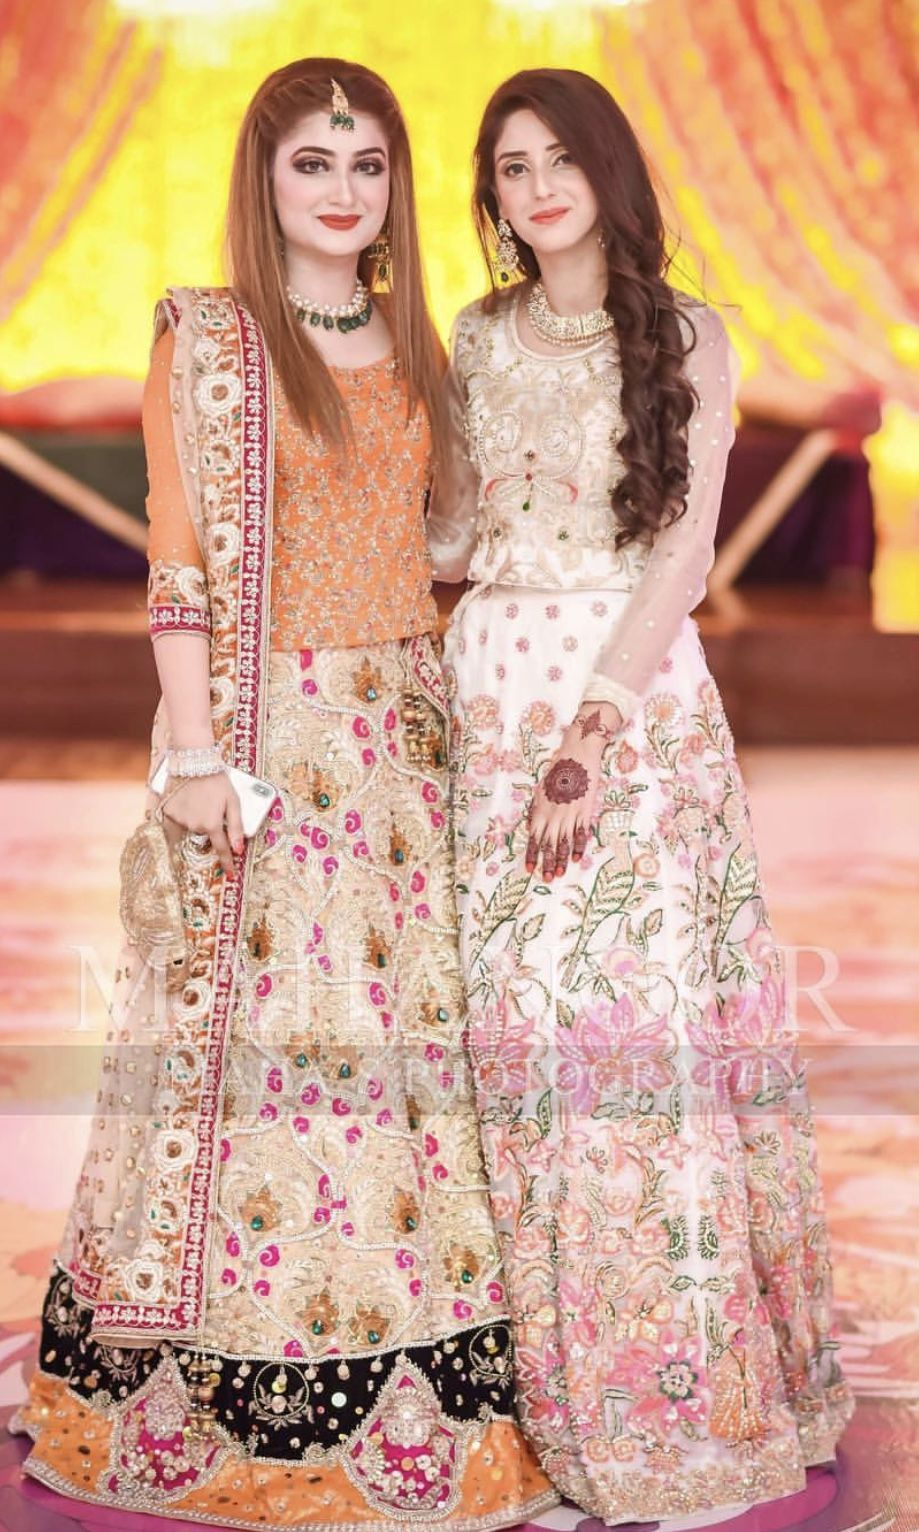 Brides Sisters Cousins Mehndi Dresses Pakistani Wedding Dresses Pakistani Dresses Casual Pakistani Formal Dresses,Indo Western Dresses For Wedding Reception